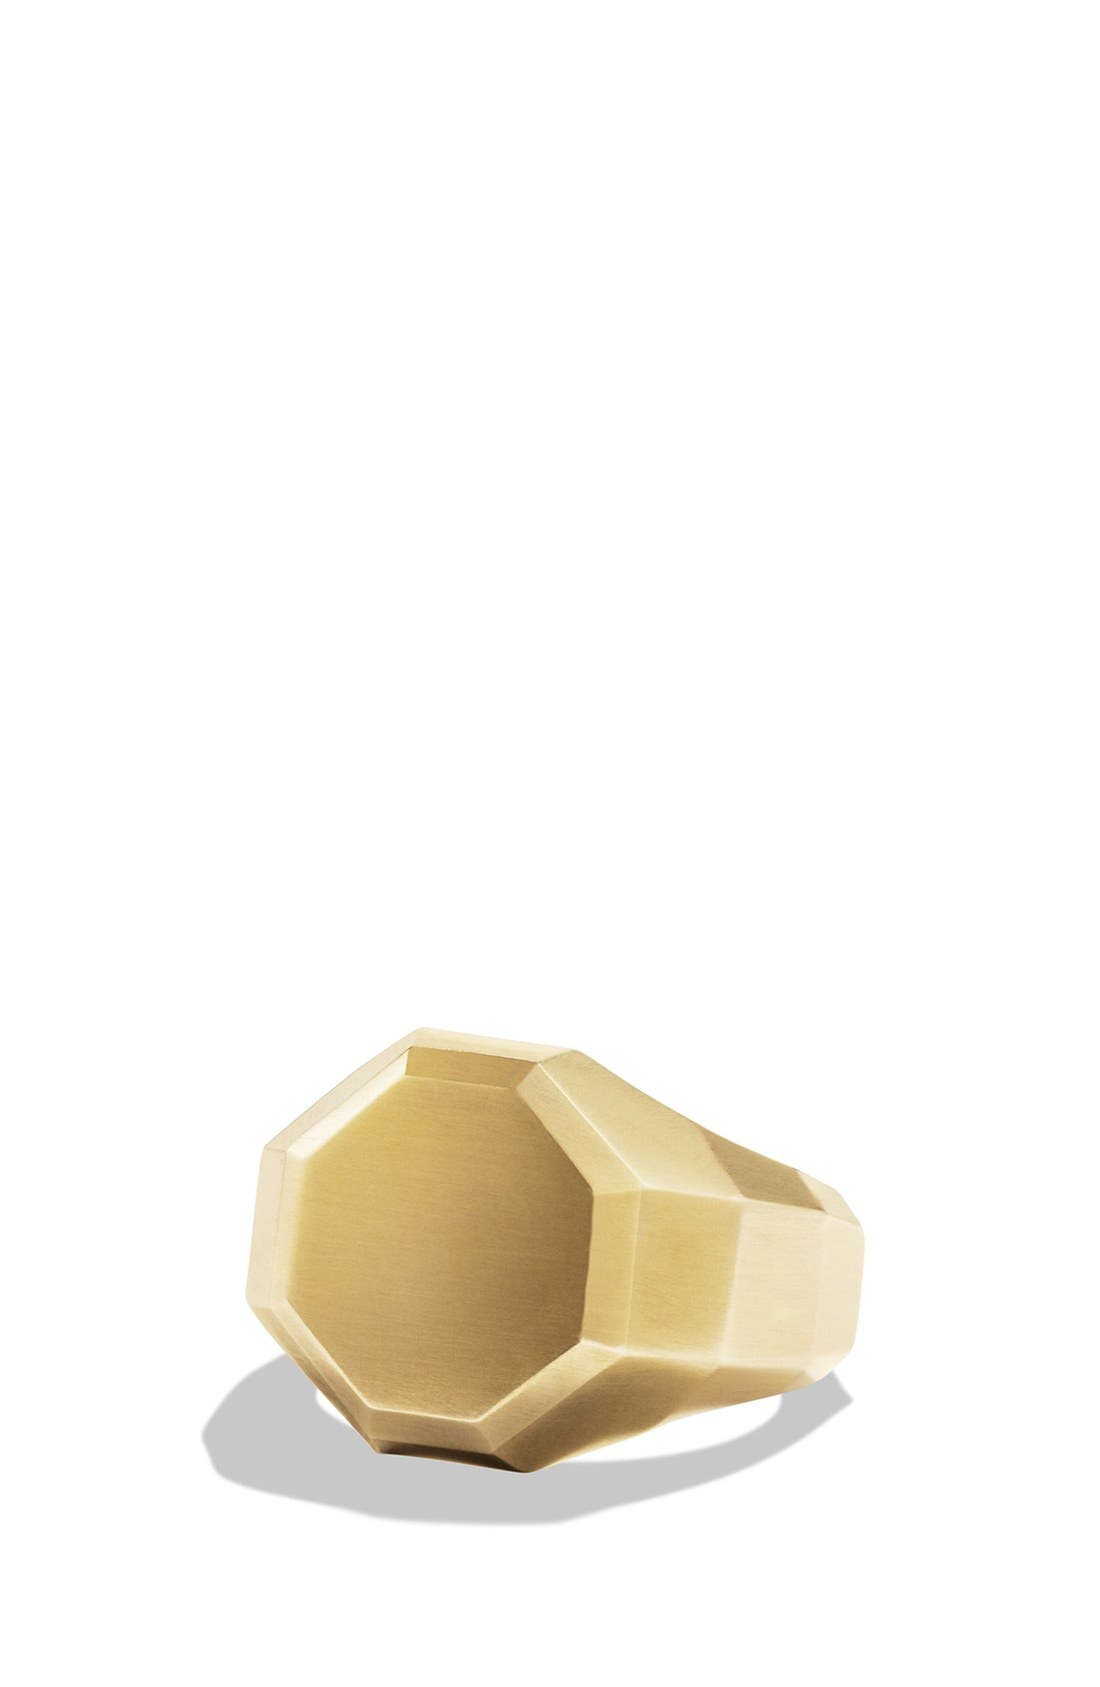 'Faceted' Signet Ring with 18k Gold,                             Main thumbnail 1, color,                             Two Tone